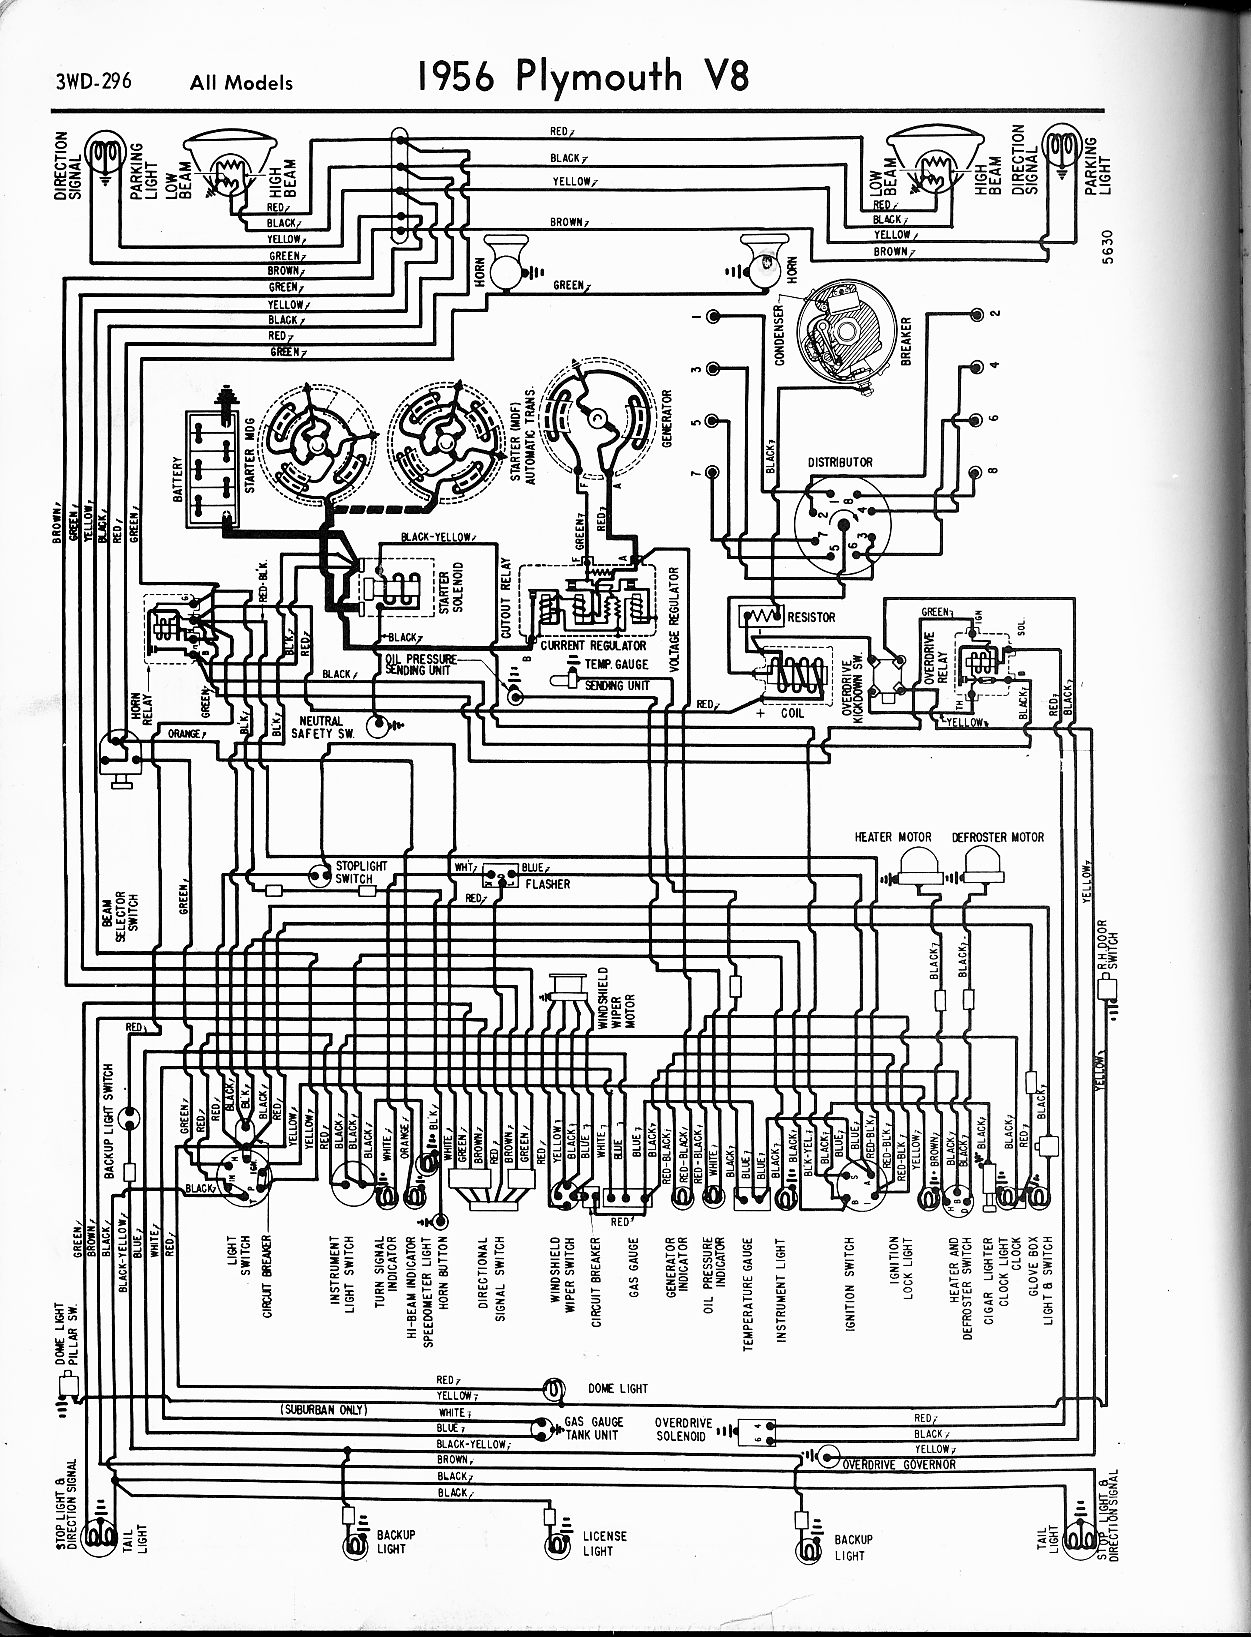 1956 1965 Plymouth Wiring The Old Car Manual Project Chrysler Wiring  Diagrams Plymouth Wiring Diagrams